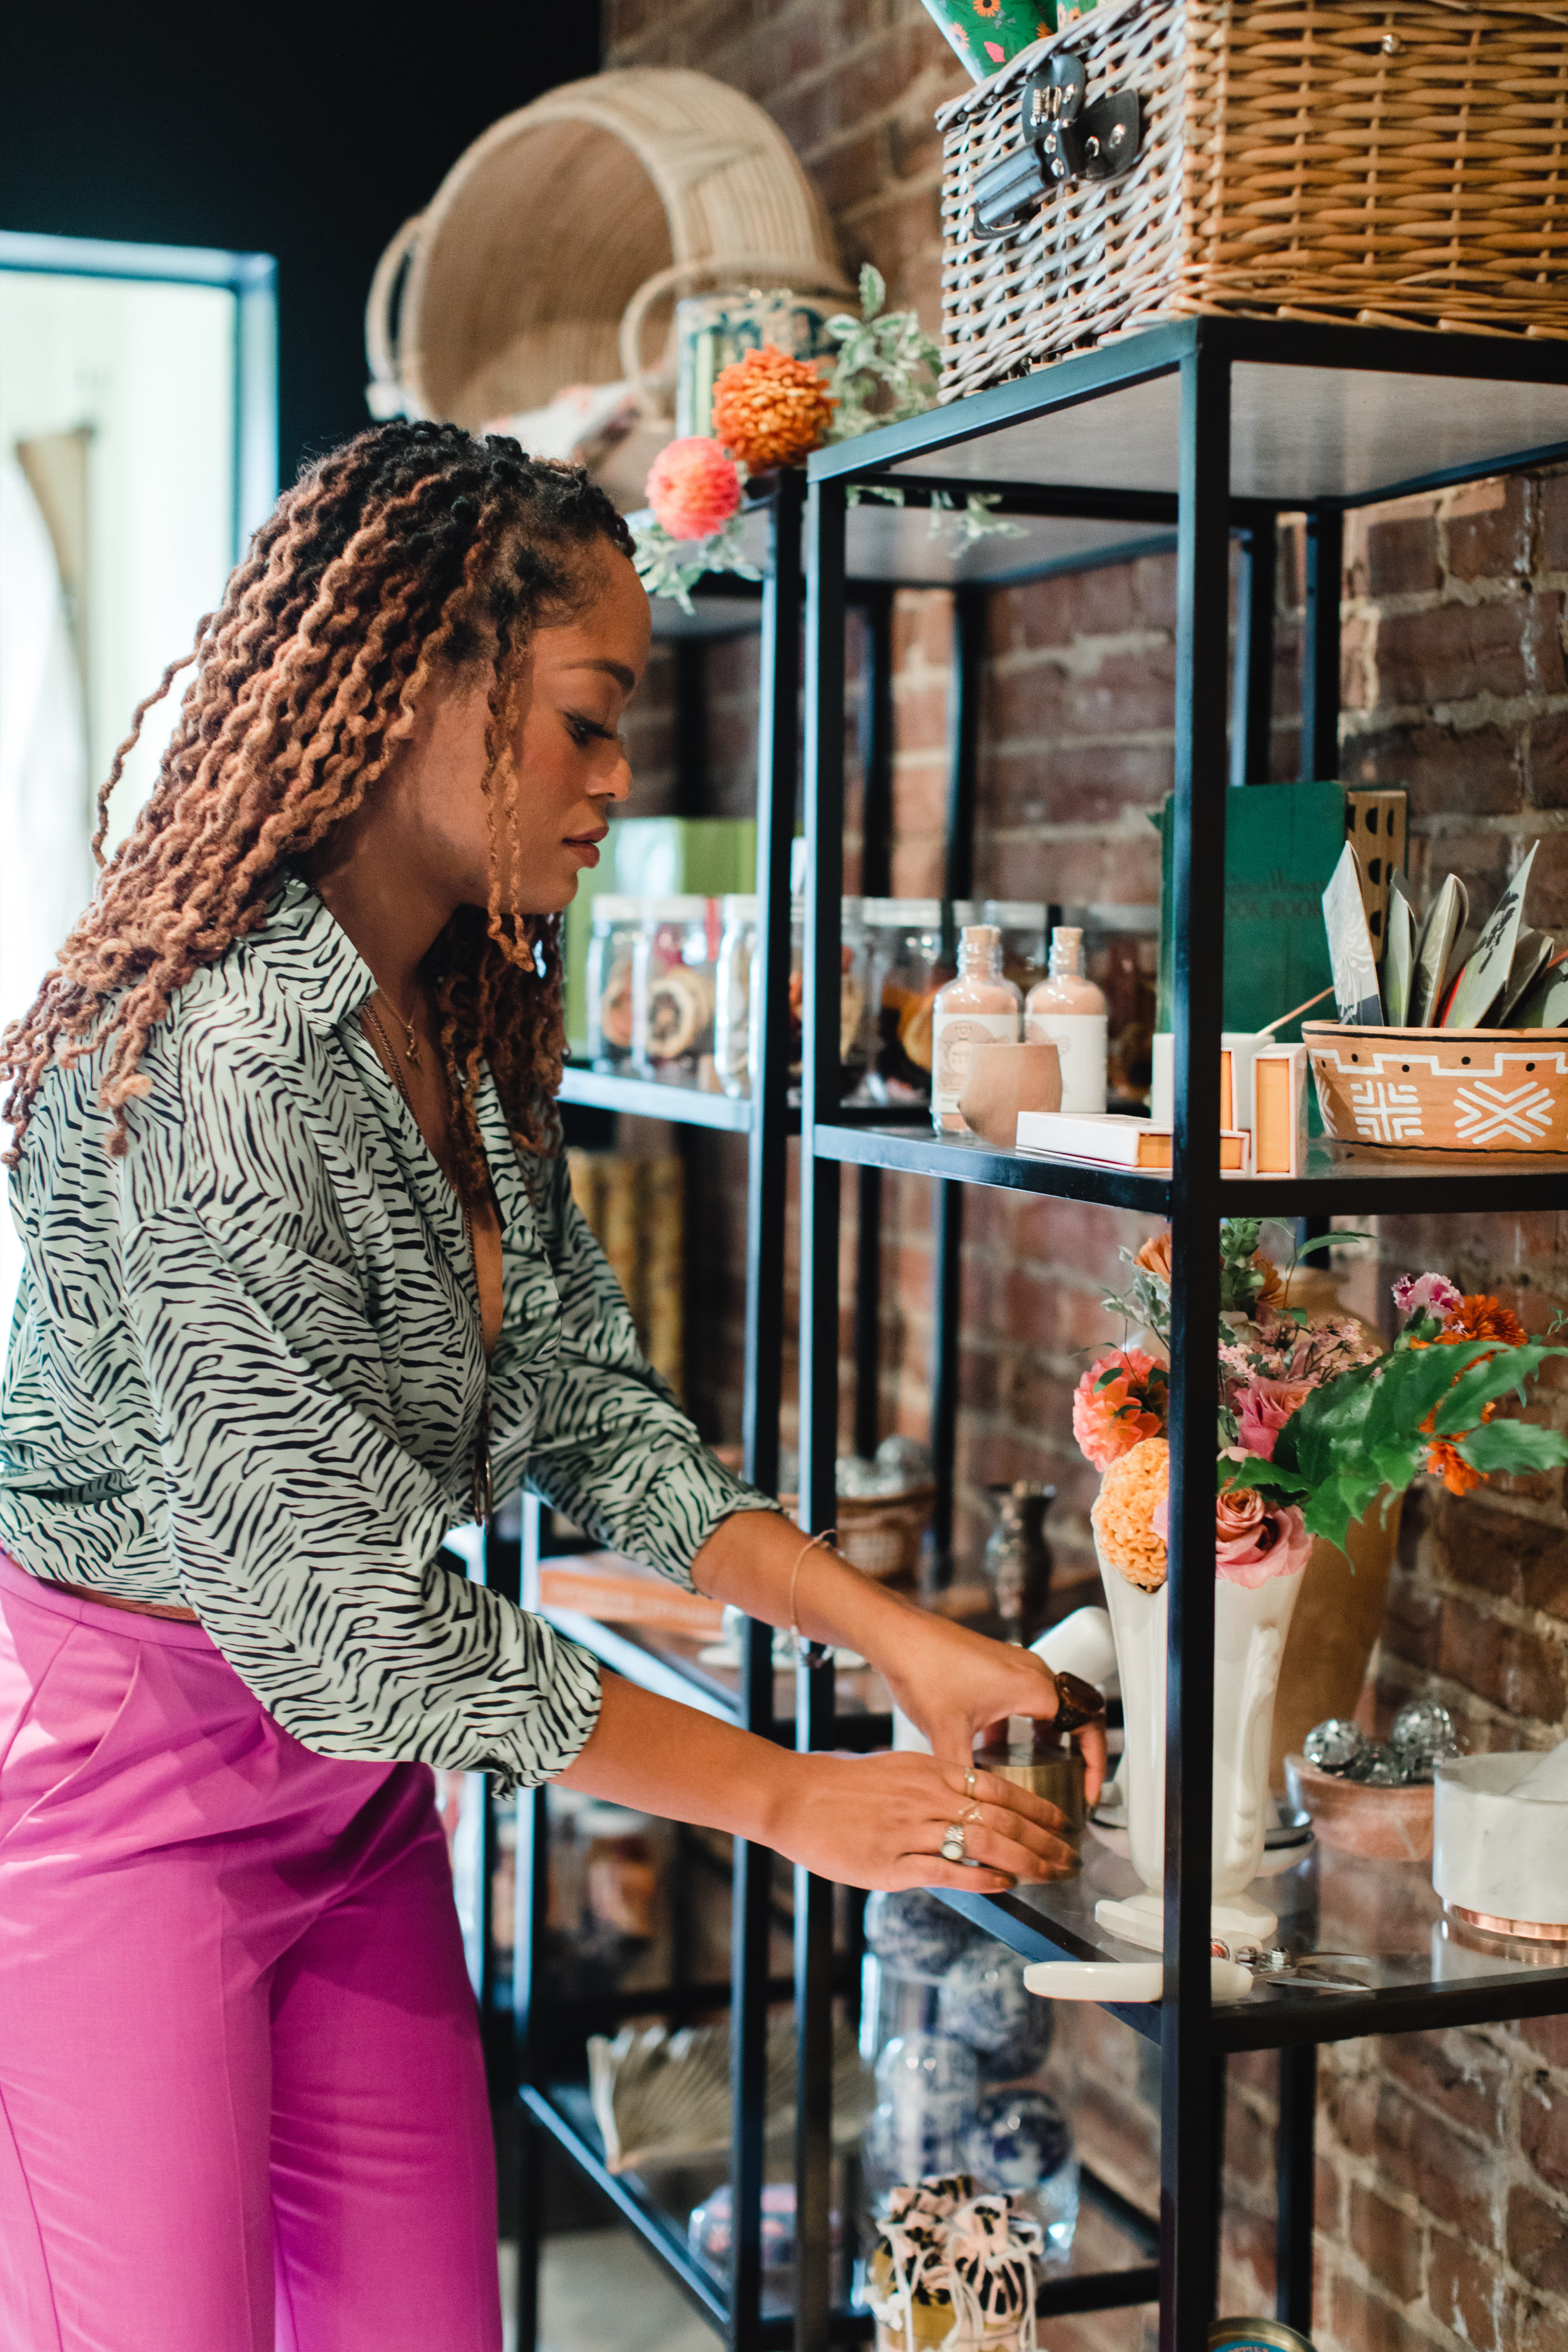 Team member Blaire Bradford adjusts a shelf stocked with curated goods. Photo by Maddie Kaye Photo.